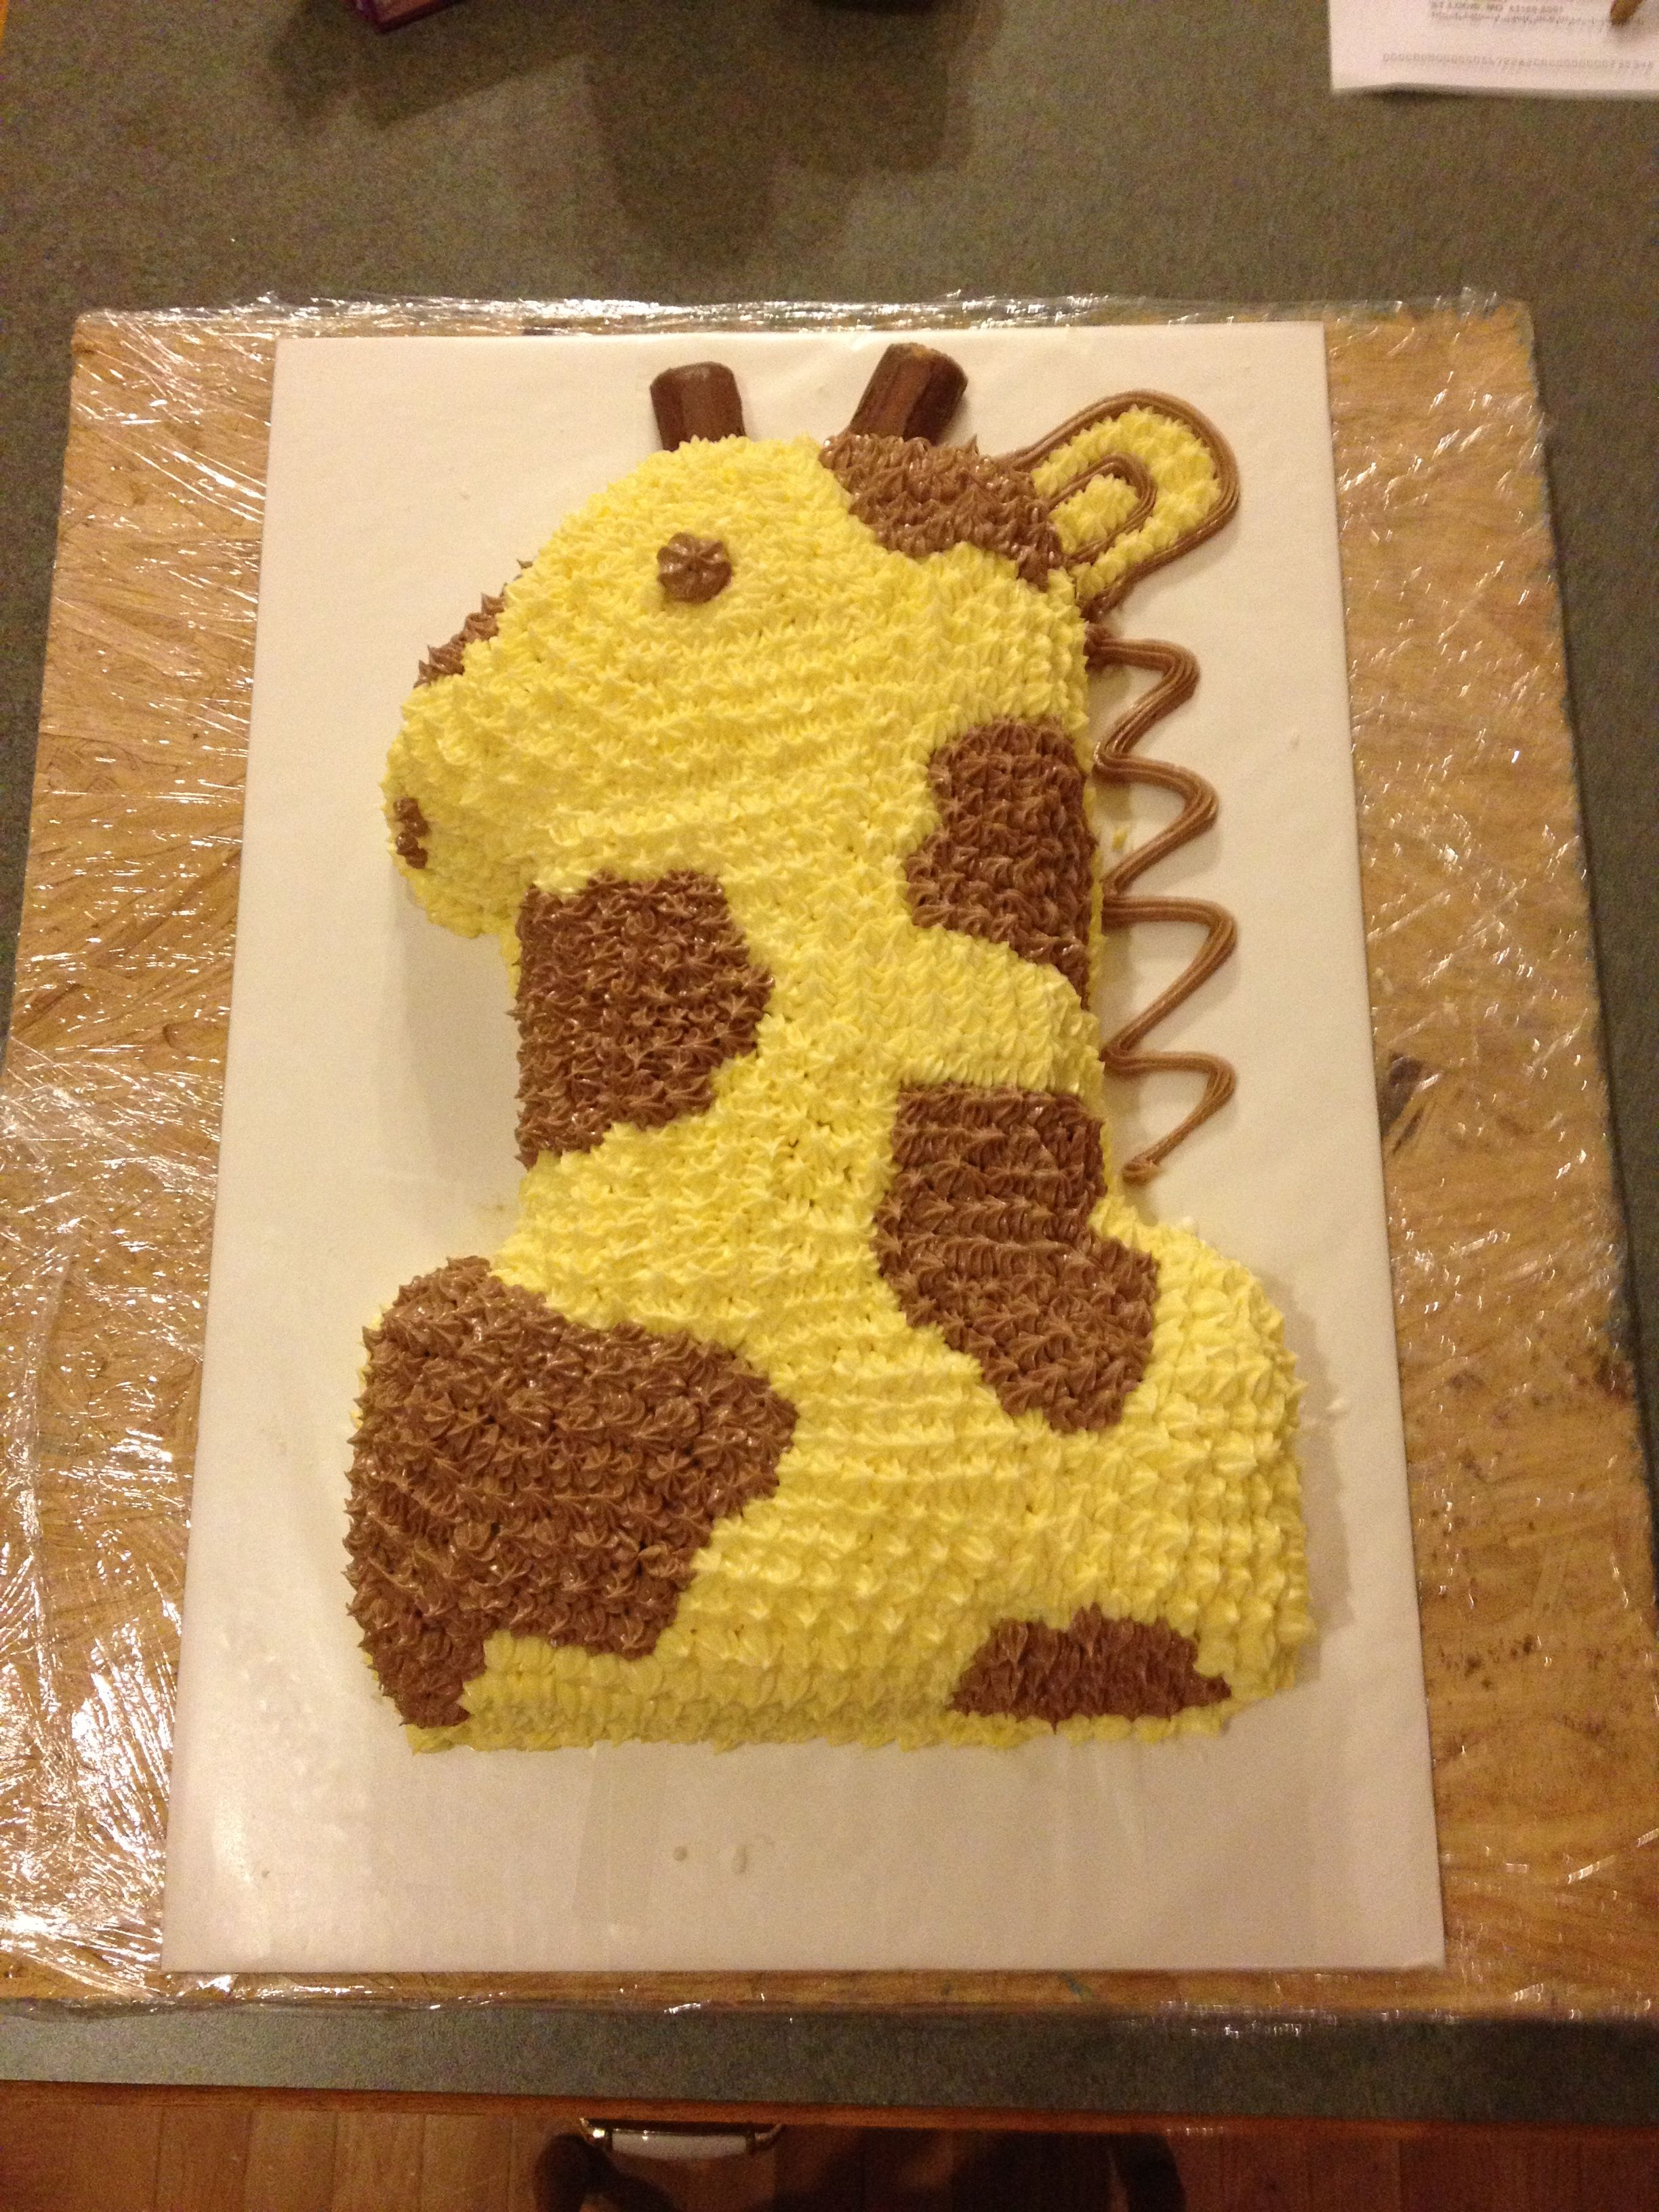 baby s first birthday cake 1 cake pan i turned into a giraffe on cake pans for babys first birthday